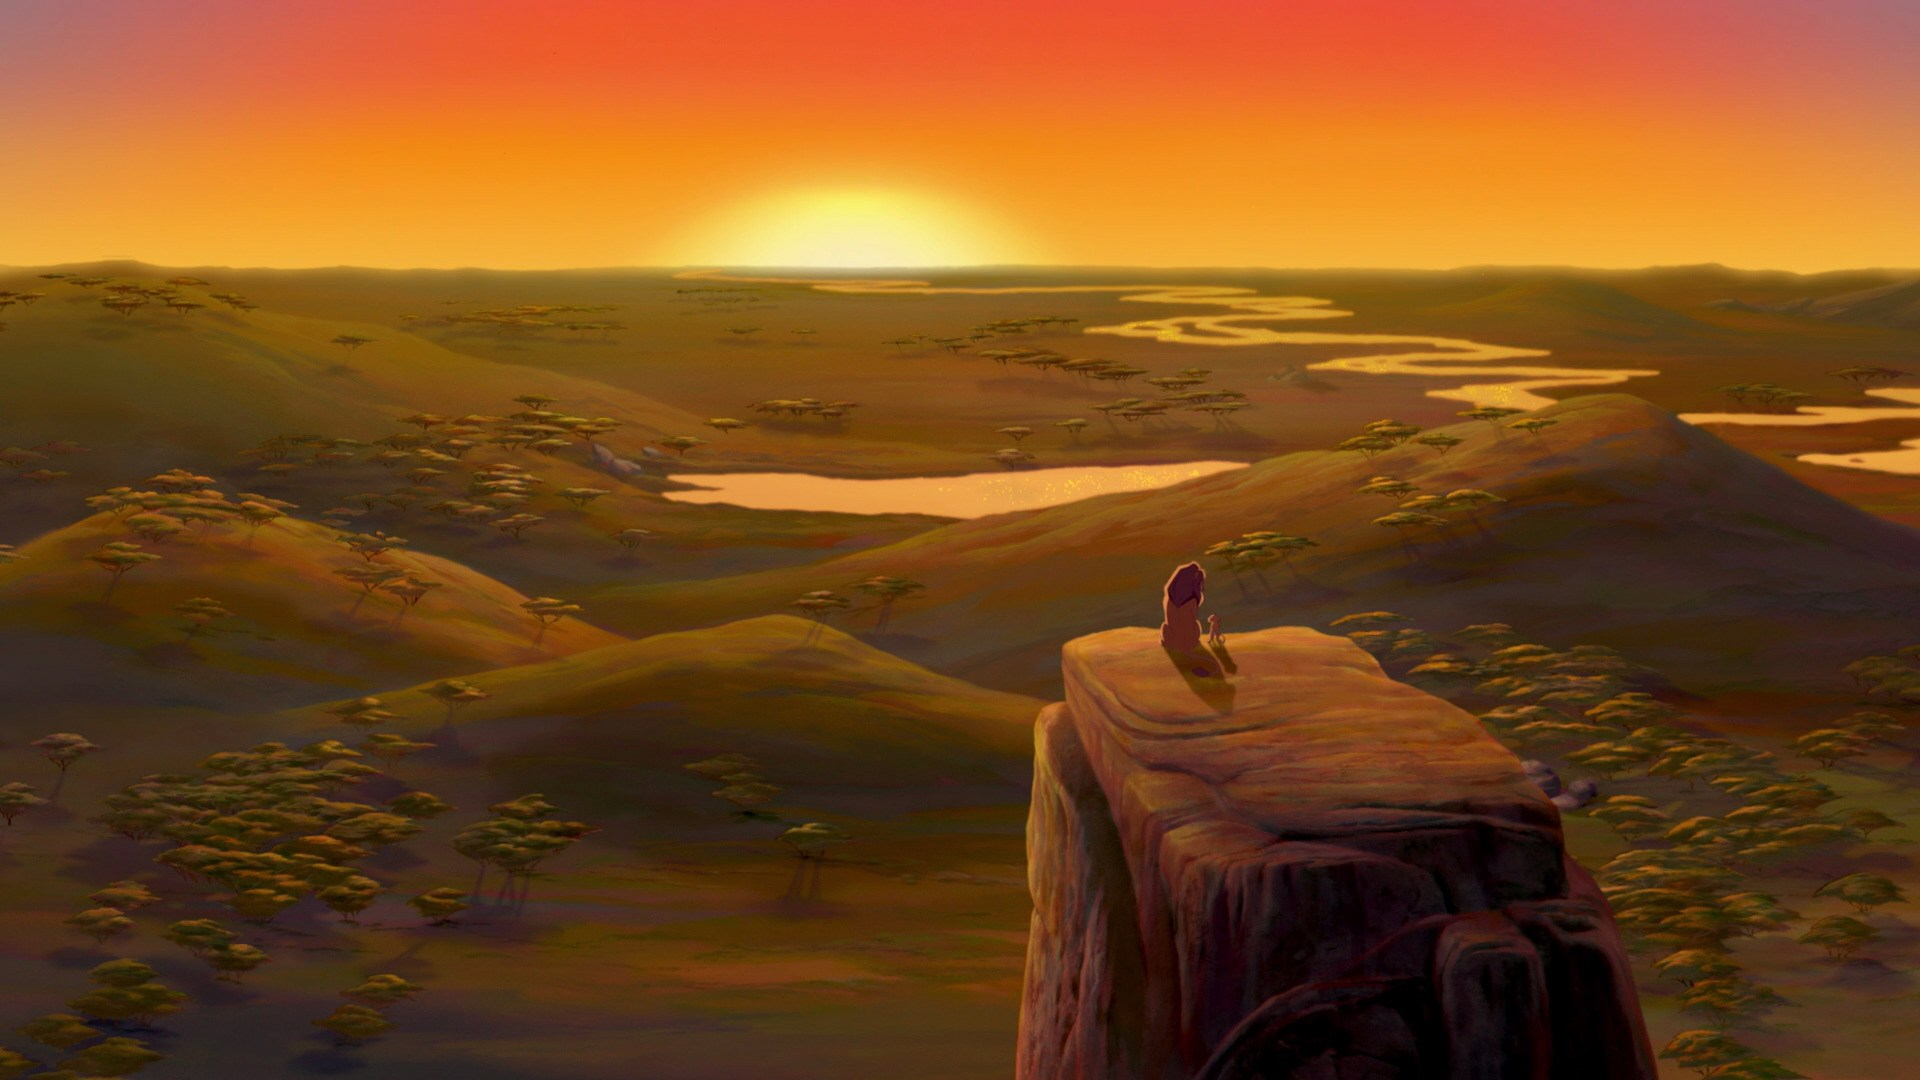 a side-by-side comparison of the new lion king with the 1994 original